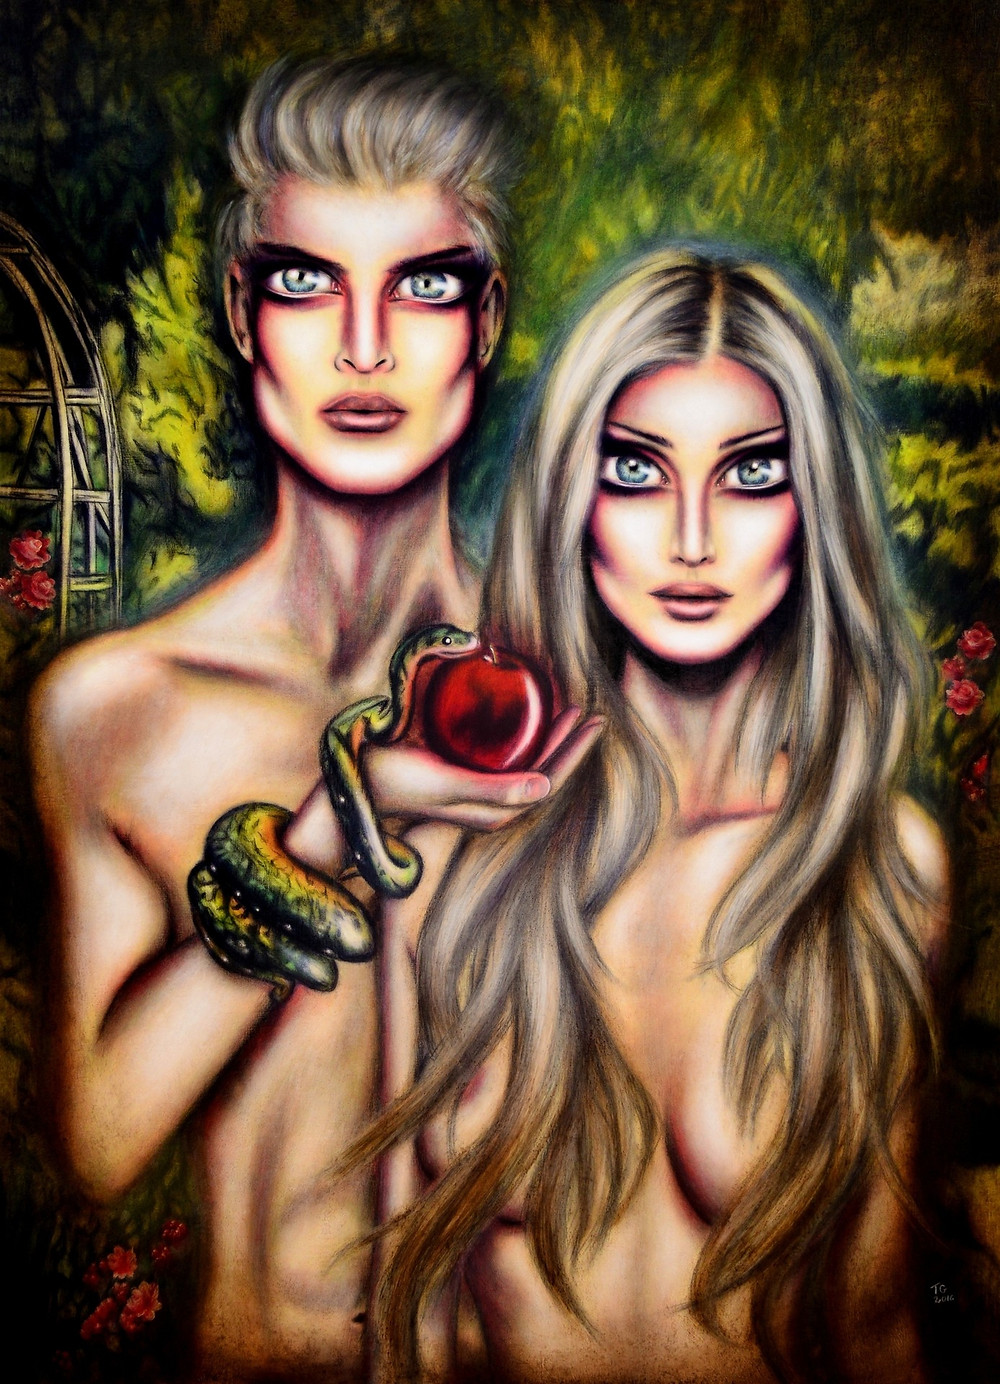 painting of blond adam and eve with a snake and an apple in the garden of eden by tiago azevedo a lowbrow pop surrealist